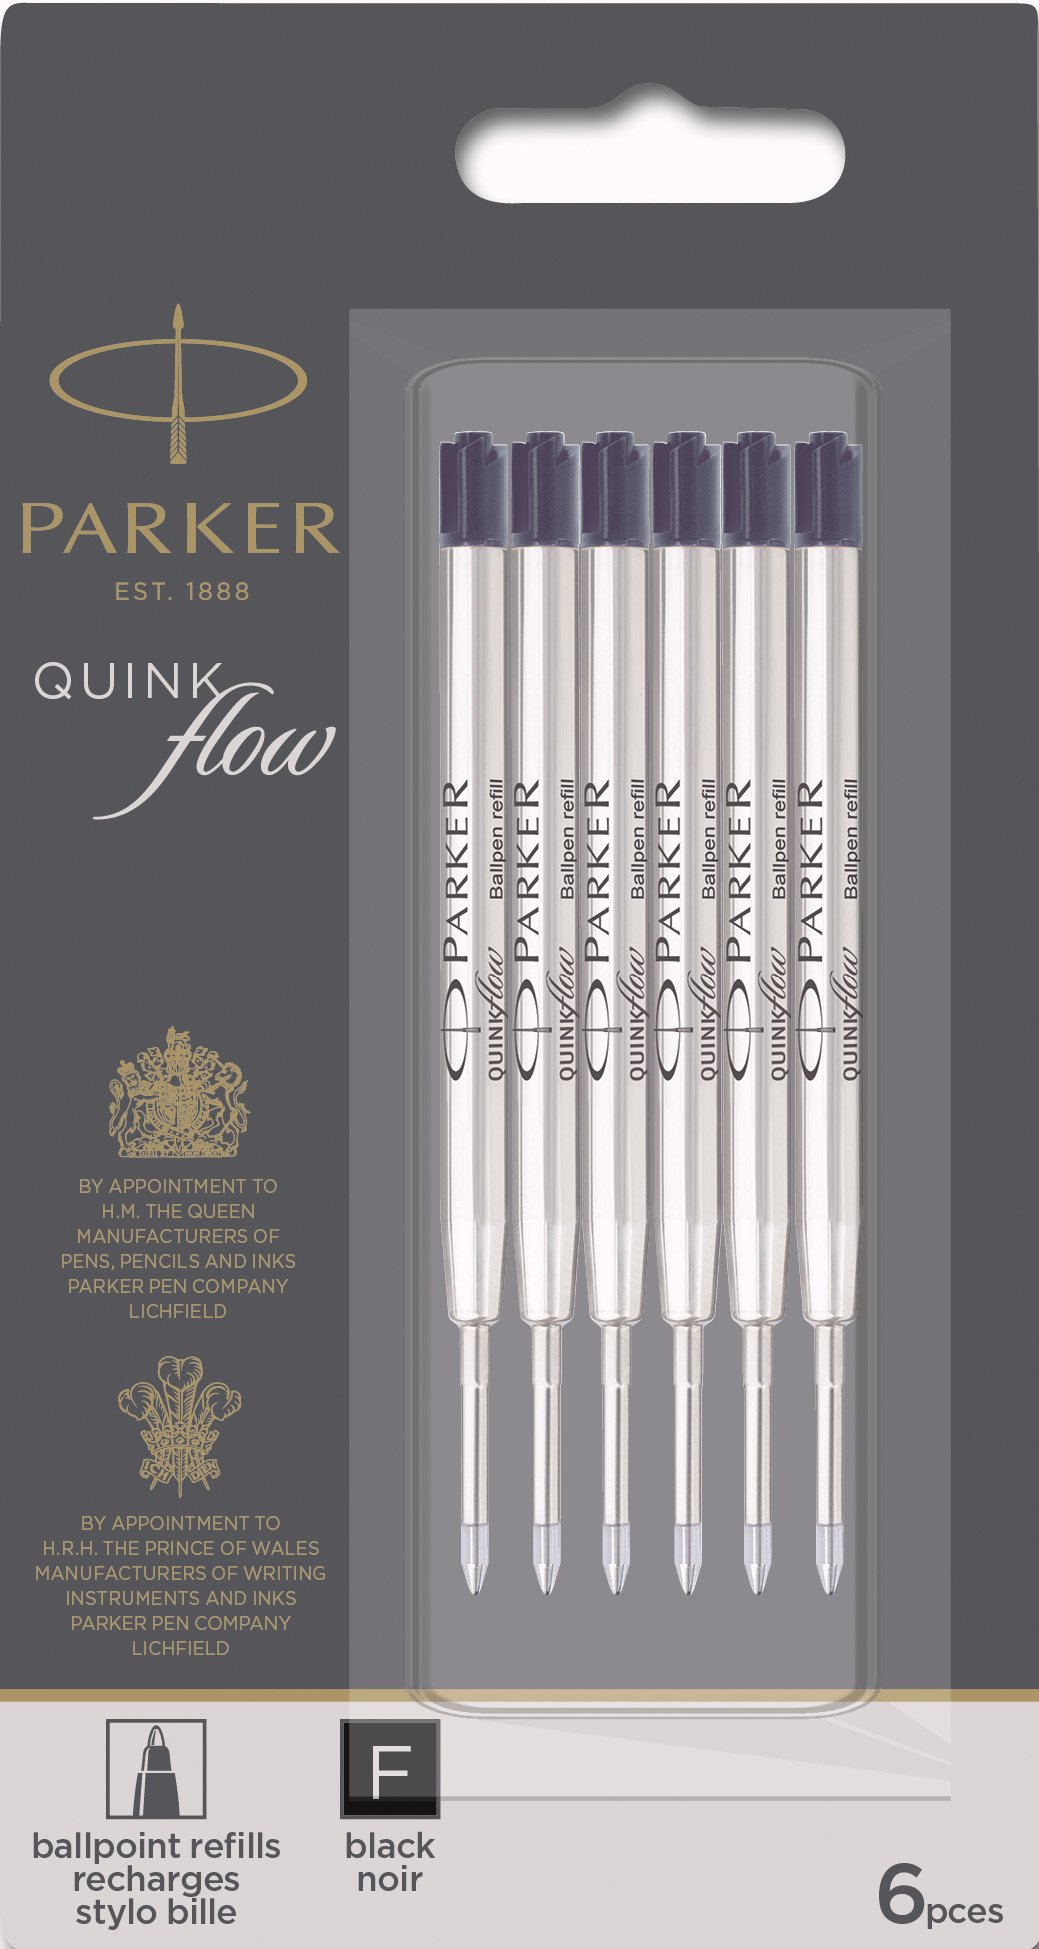 Parker QUINKflow Ballpoint Pen Ink Refills, Fine Tip, Black, 6 Count Value Pack (2025155) by Parker (Image #1)